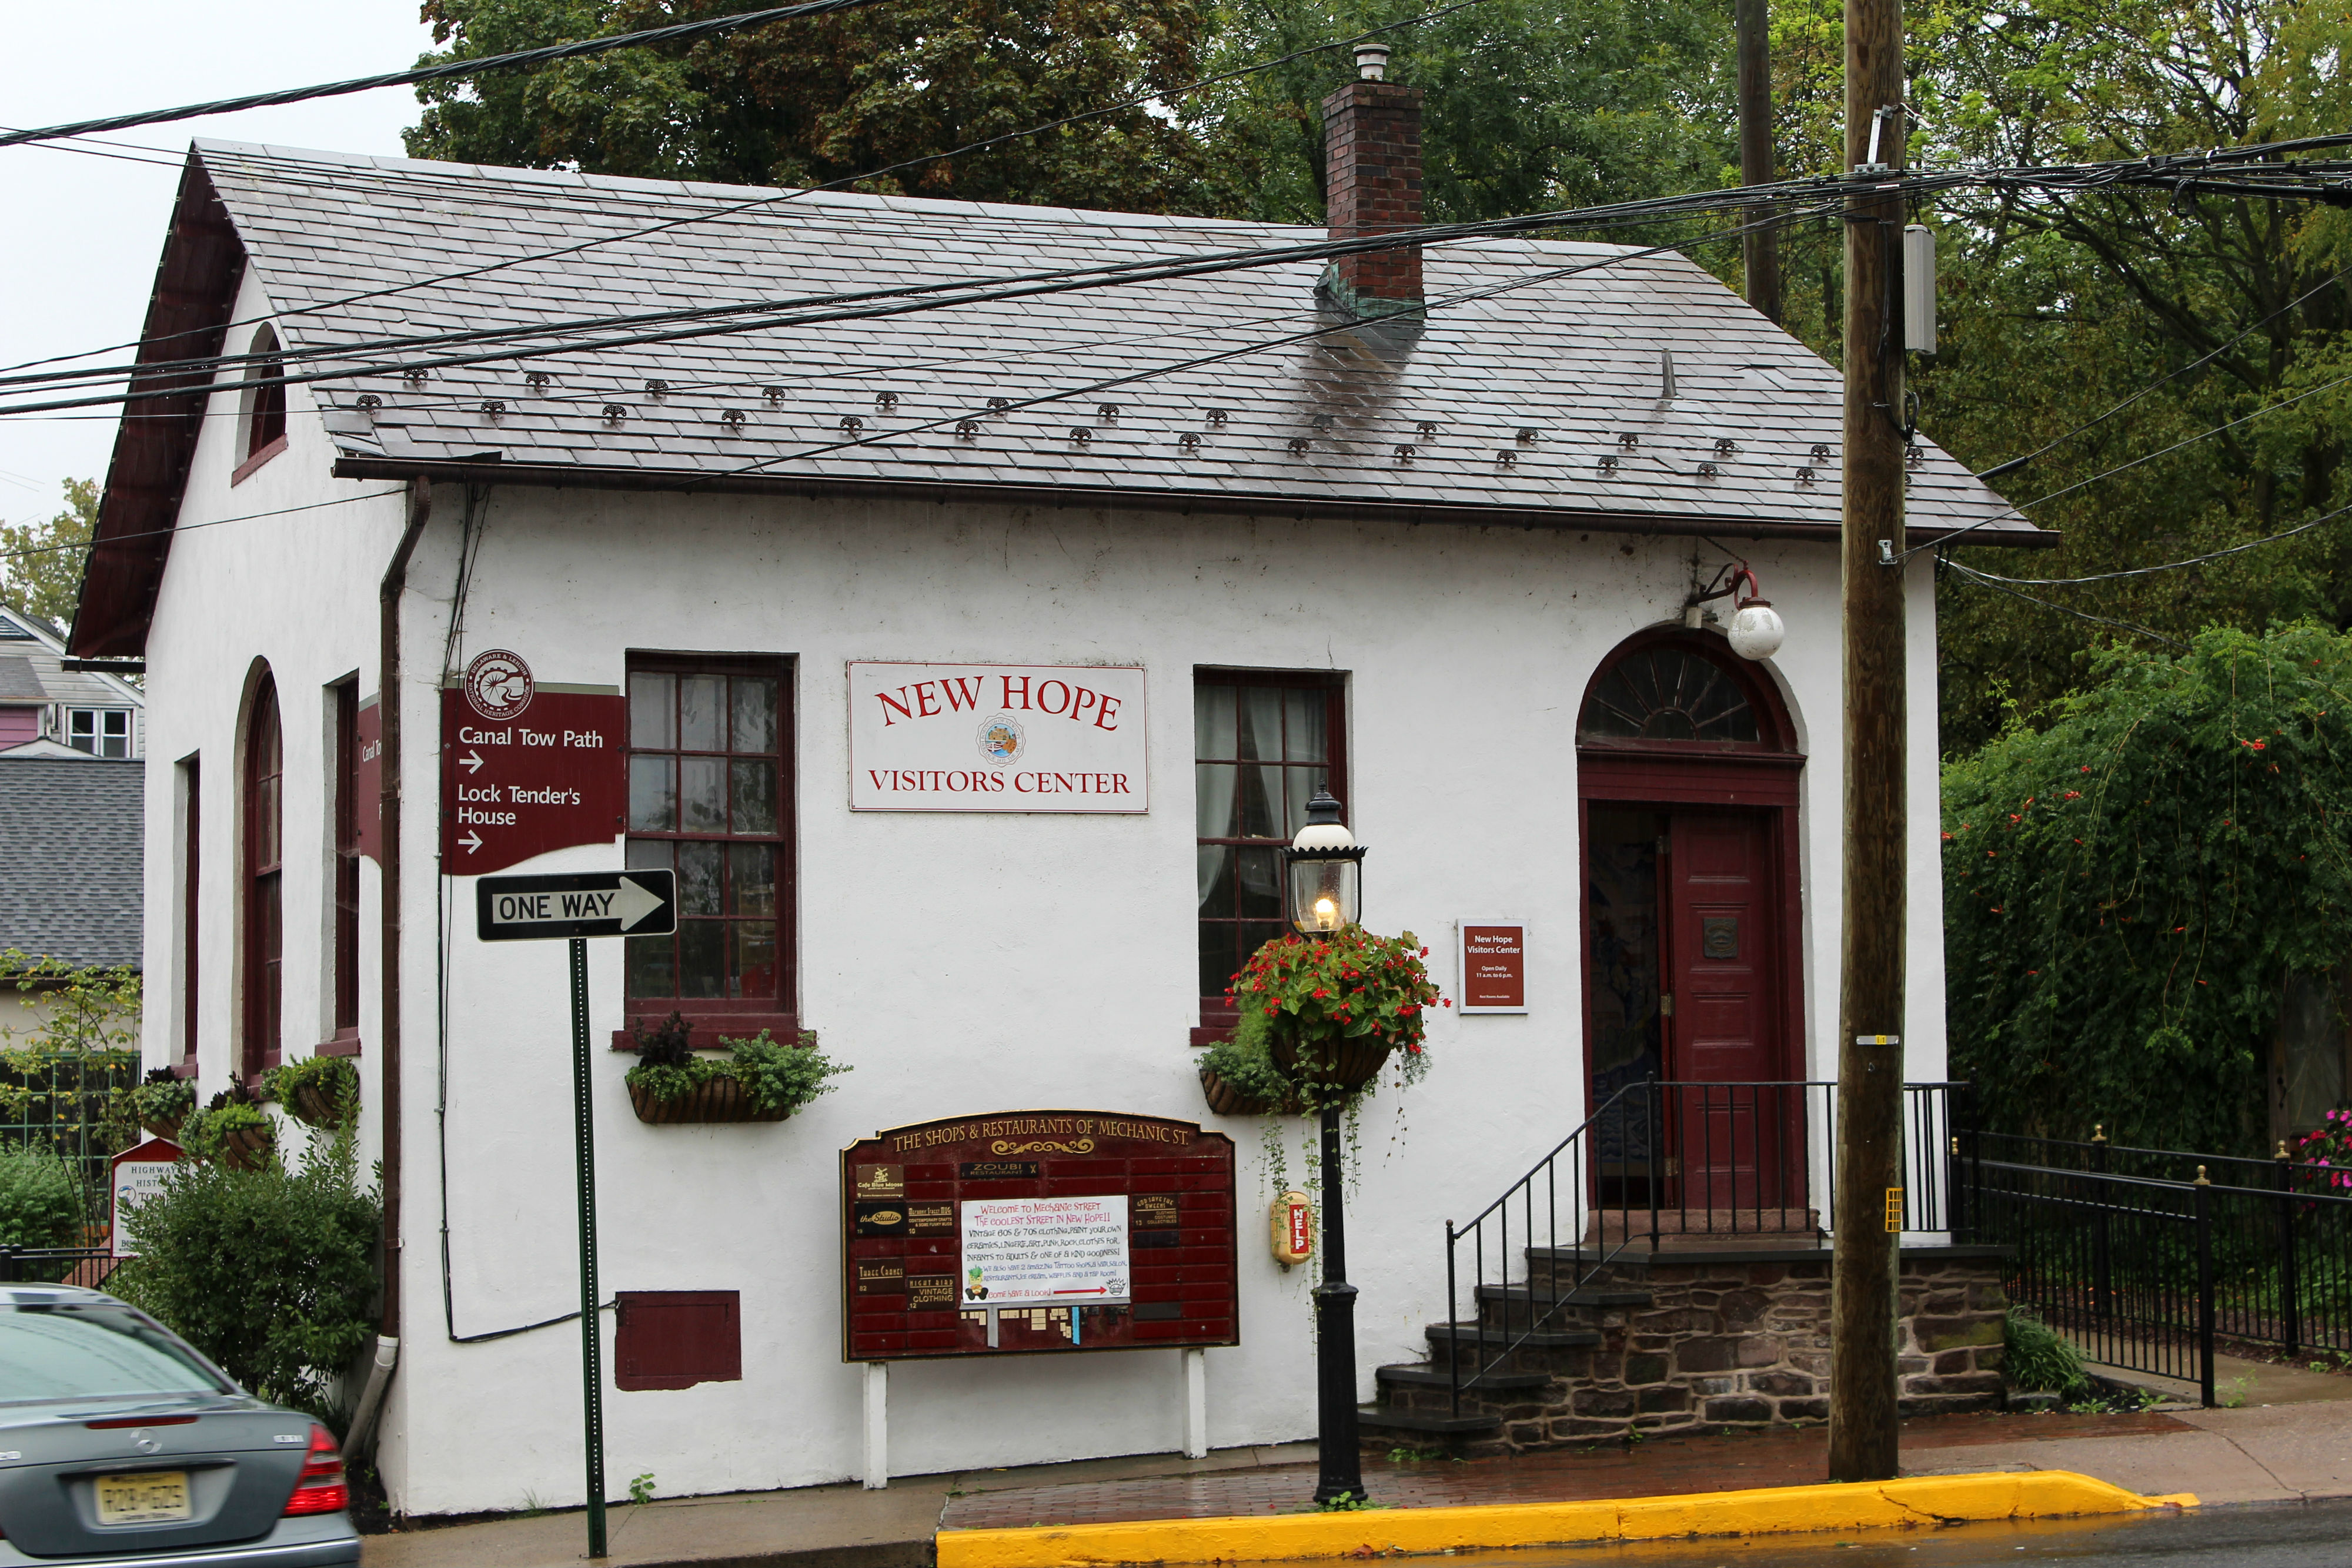 The New Hope Visitor's Center was built in 1839 and was the town's first town hall, school and jail.{ }(Image: Julie Gallagher)